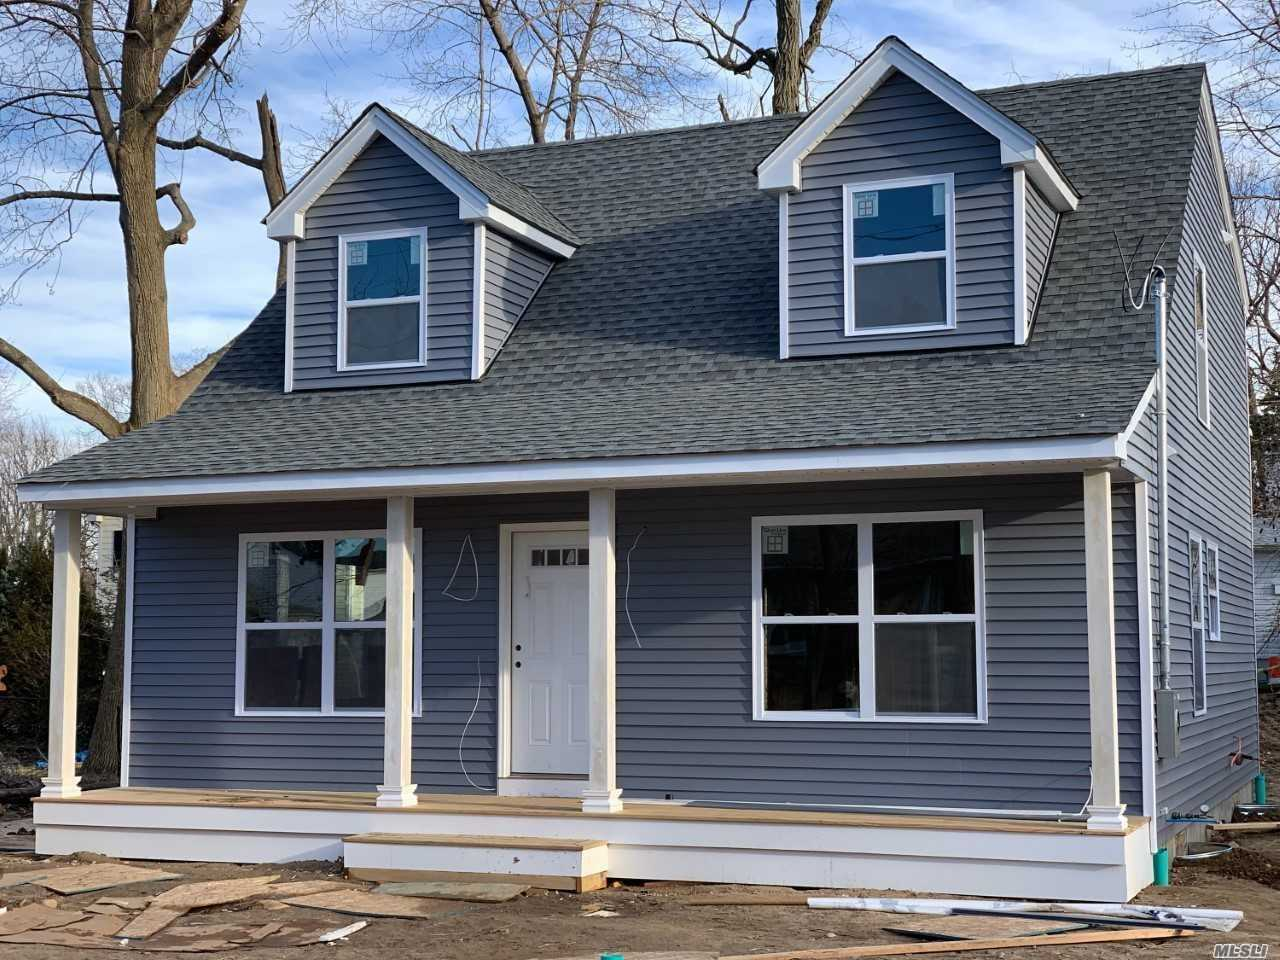 New Colonial-Under Construction Kitchen/Granite Countertops, Oak Floors, Central Air Conditioning, Gas Heating, Architectual Roof, Vinyl Siding, Hi Hats, Gas Fireplace, 200 Amp Electrical Service-Still Time To Customize Will Be Ready In 4 Months.